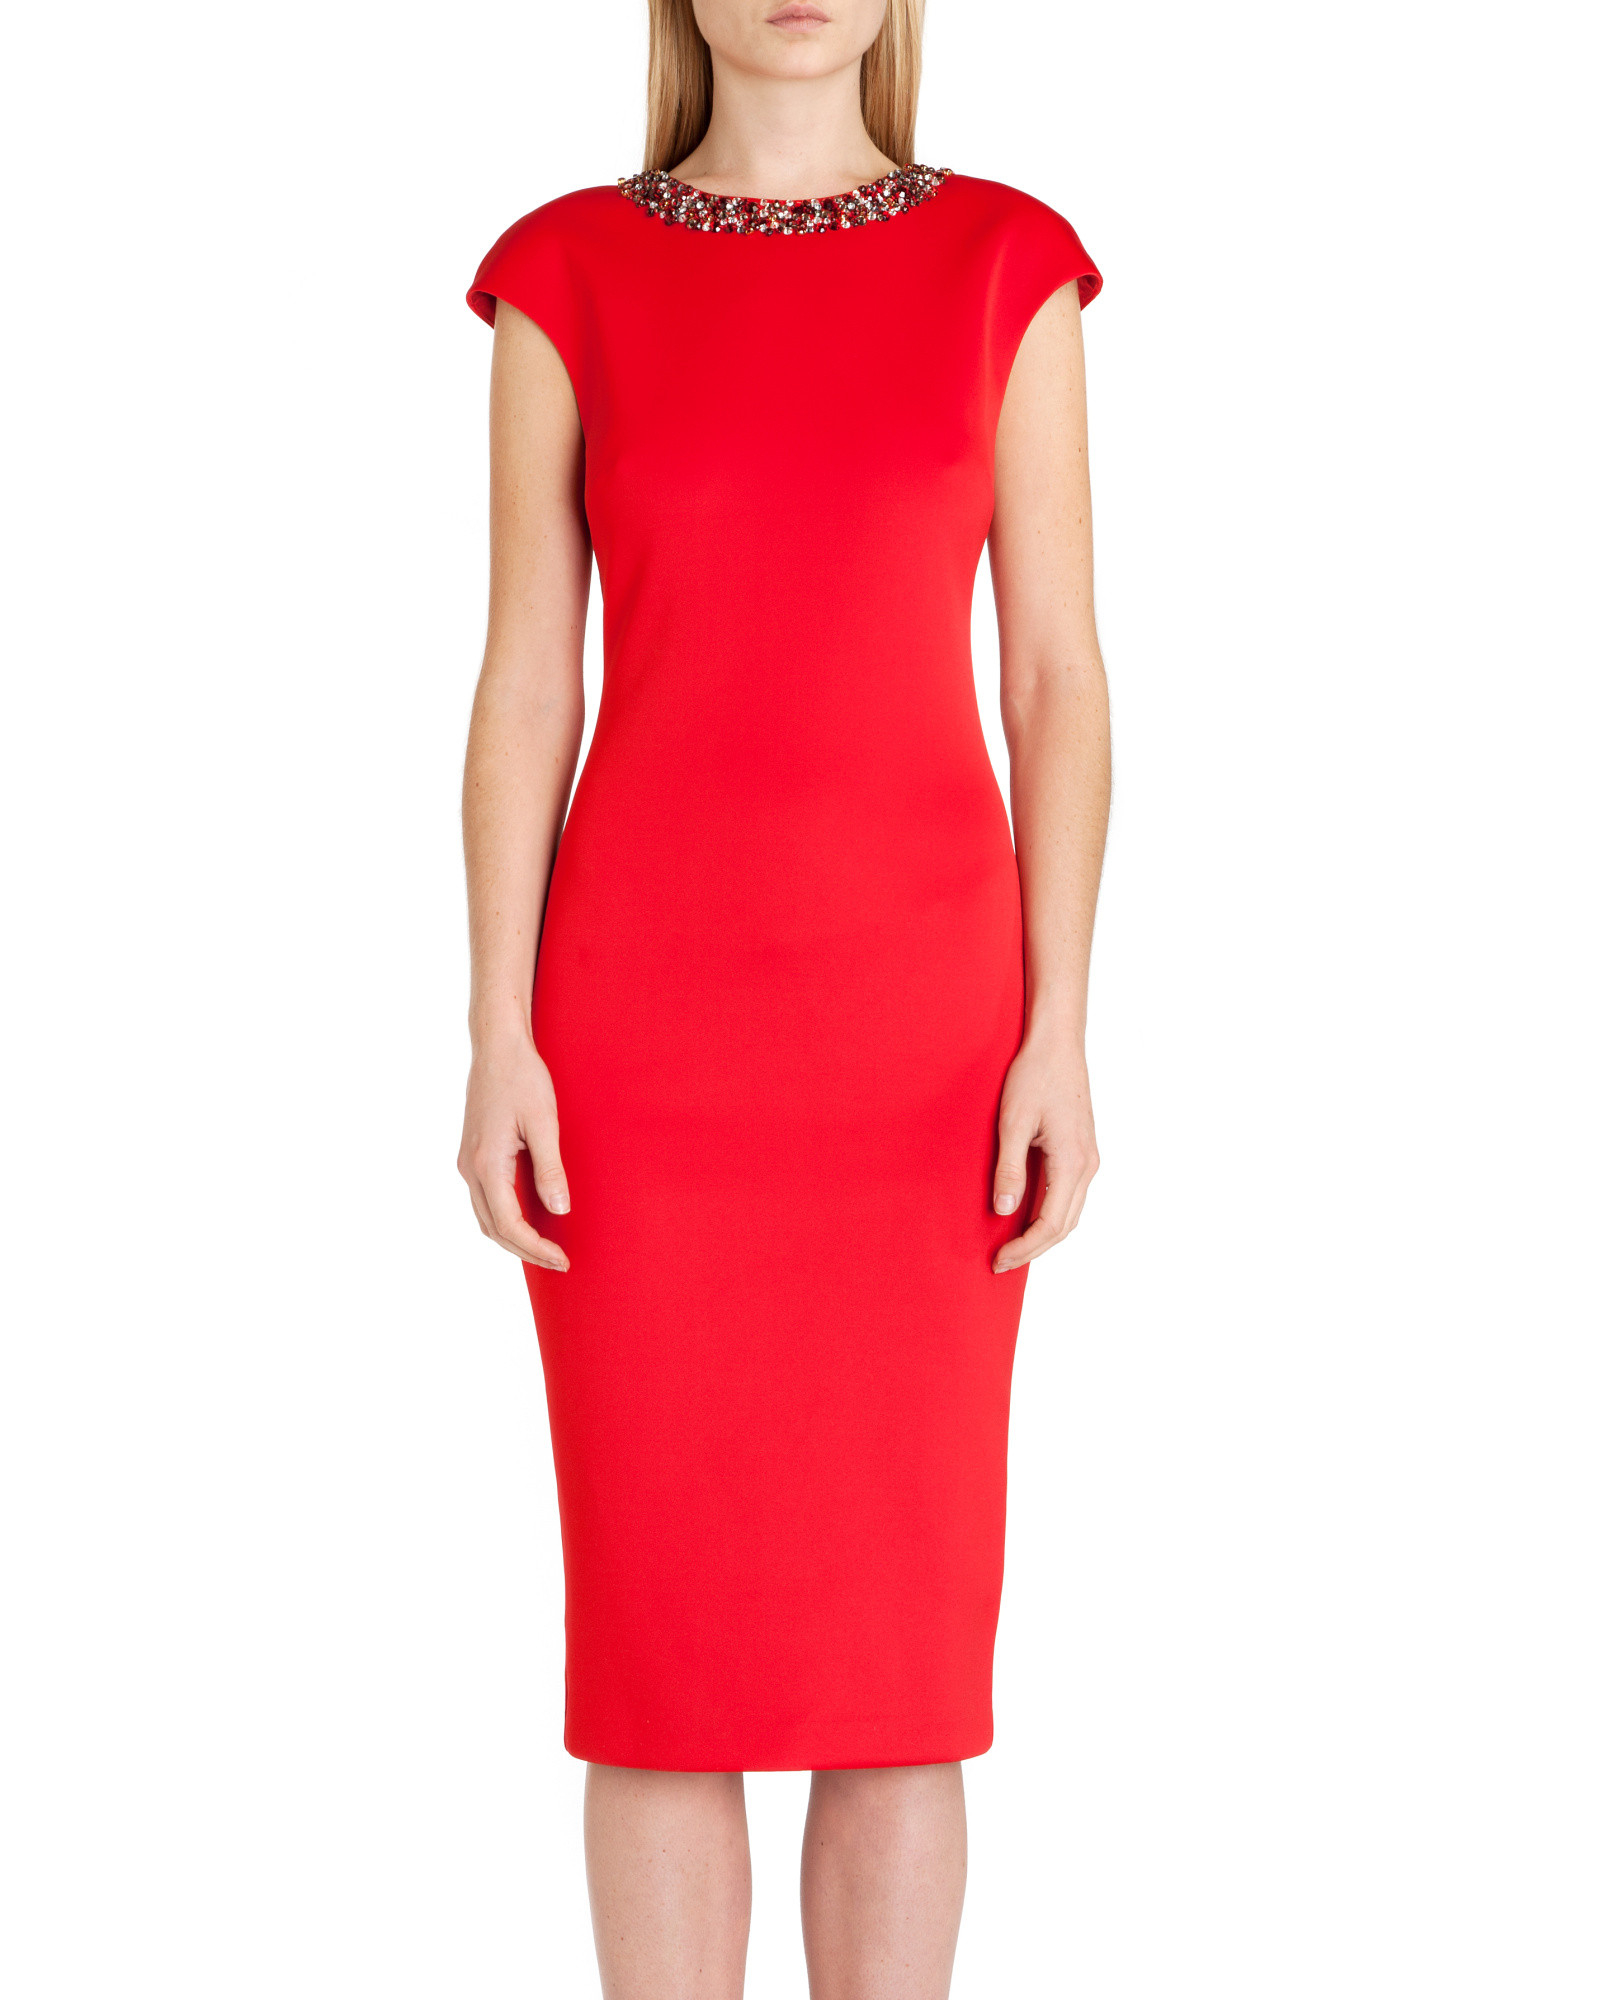 610a9b242 Lyst - Ted Baker Elenna Embellished Midi Dress in Red